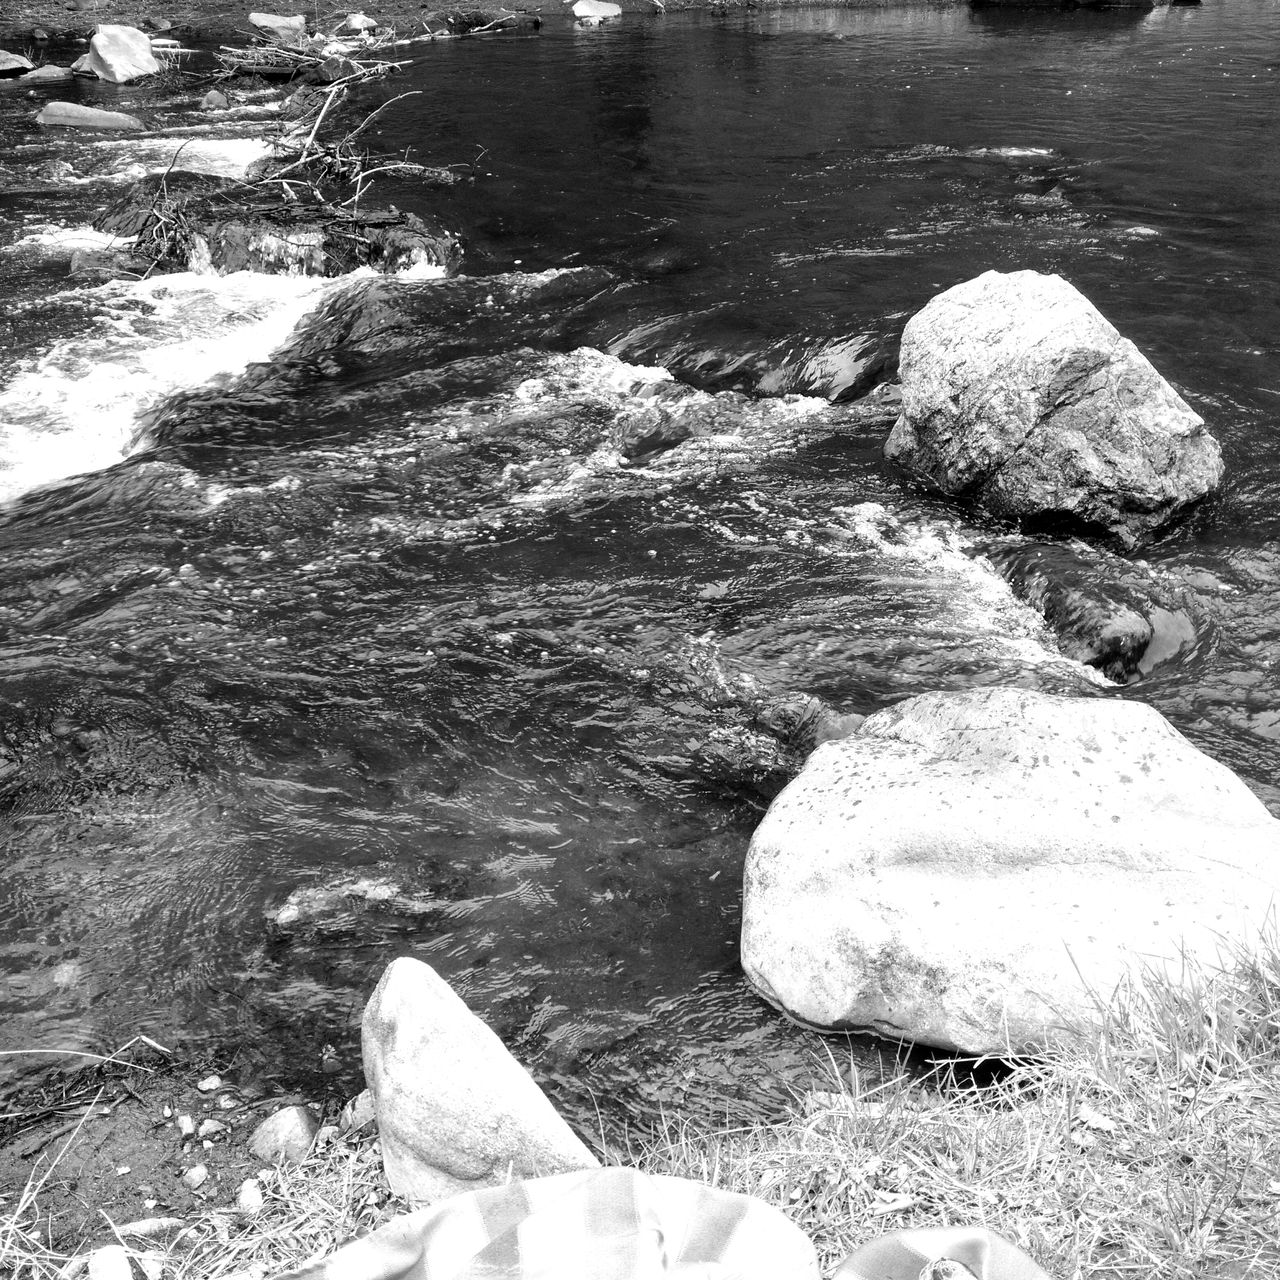 Black And White Ripples In The Water Riverside Black & White Fineart_photobw Countryside Colorado Photography River Collection Riverside Photography Blackandwhite Blackandwhite Photography Sand Shore Beauty In Nature Close-up Country Life Rippled Rippled Water Ripples Fine Art Photography Water Water_collection Freshness Scenics